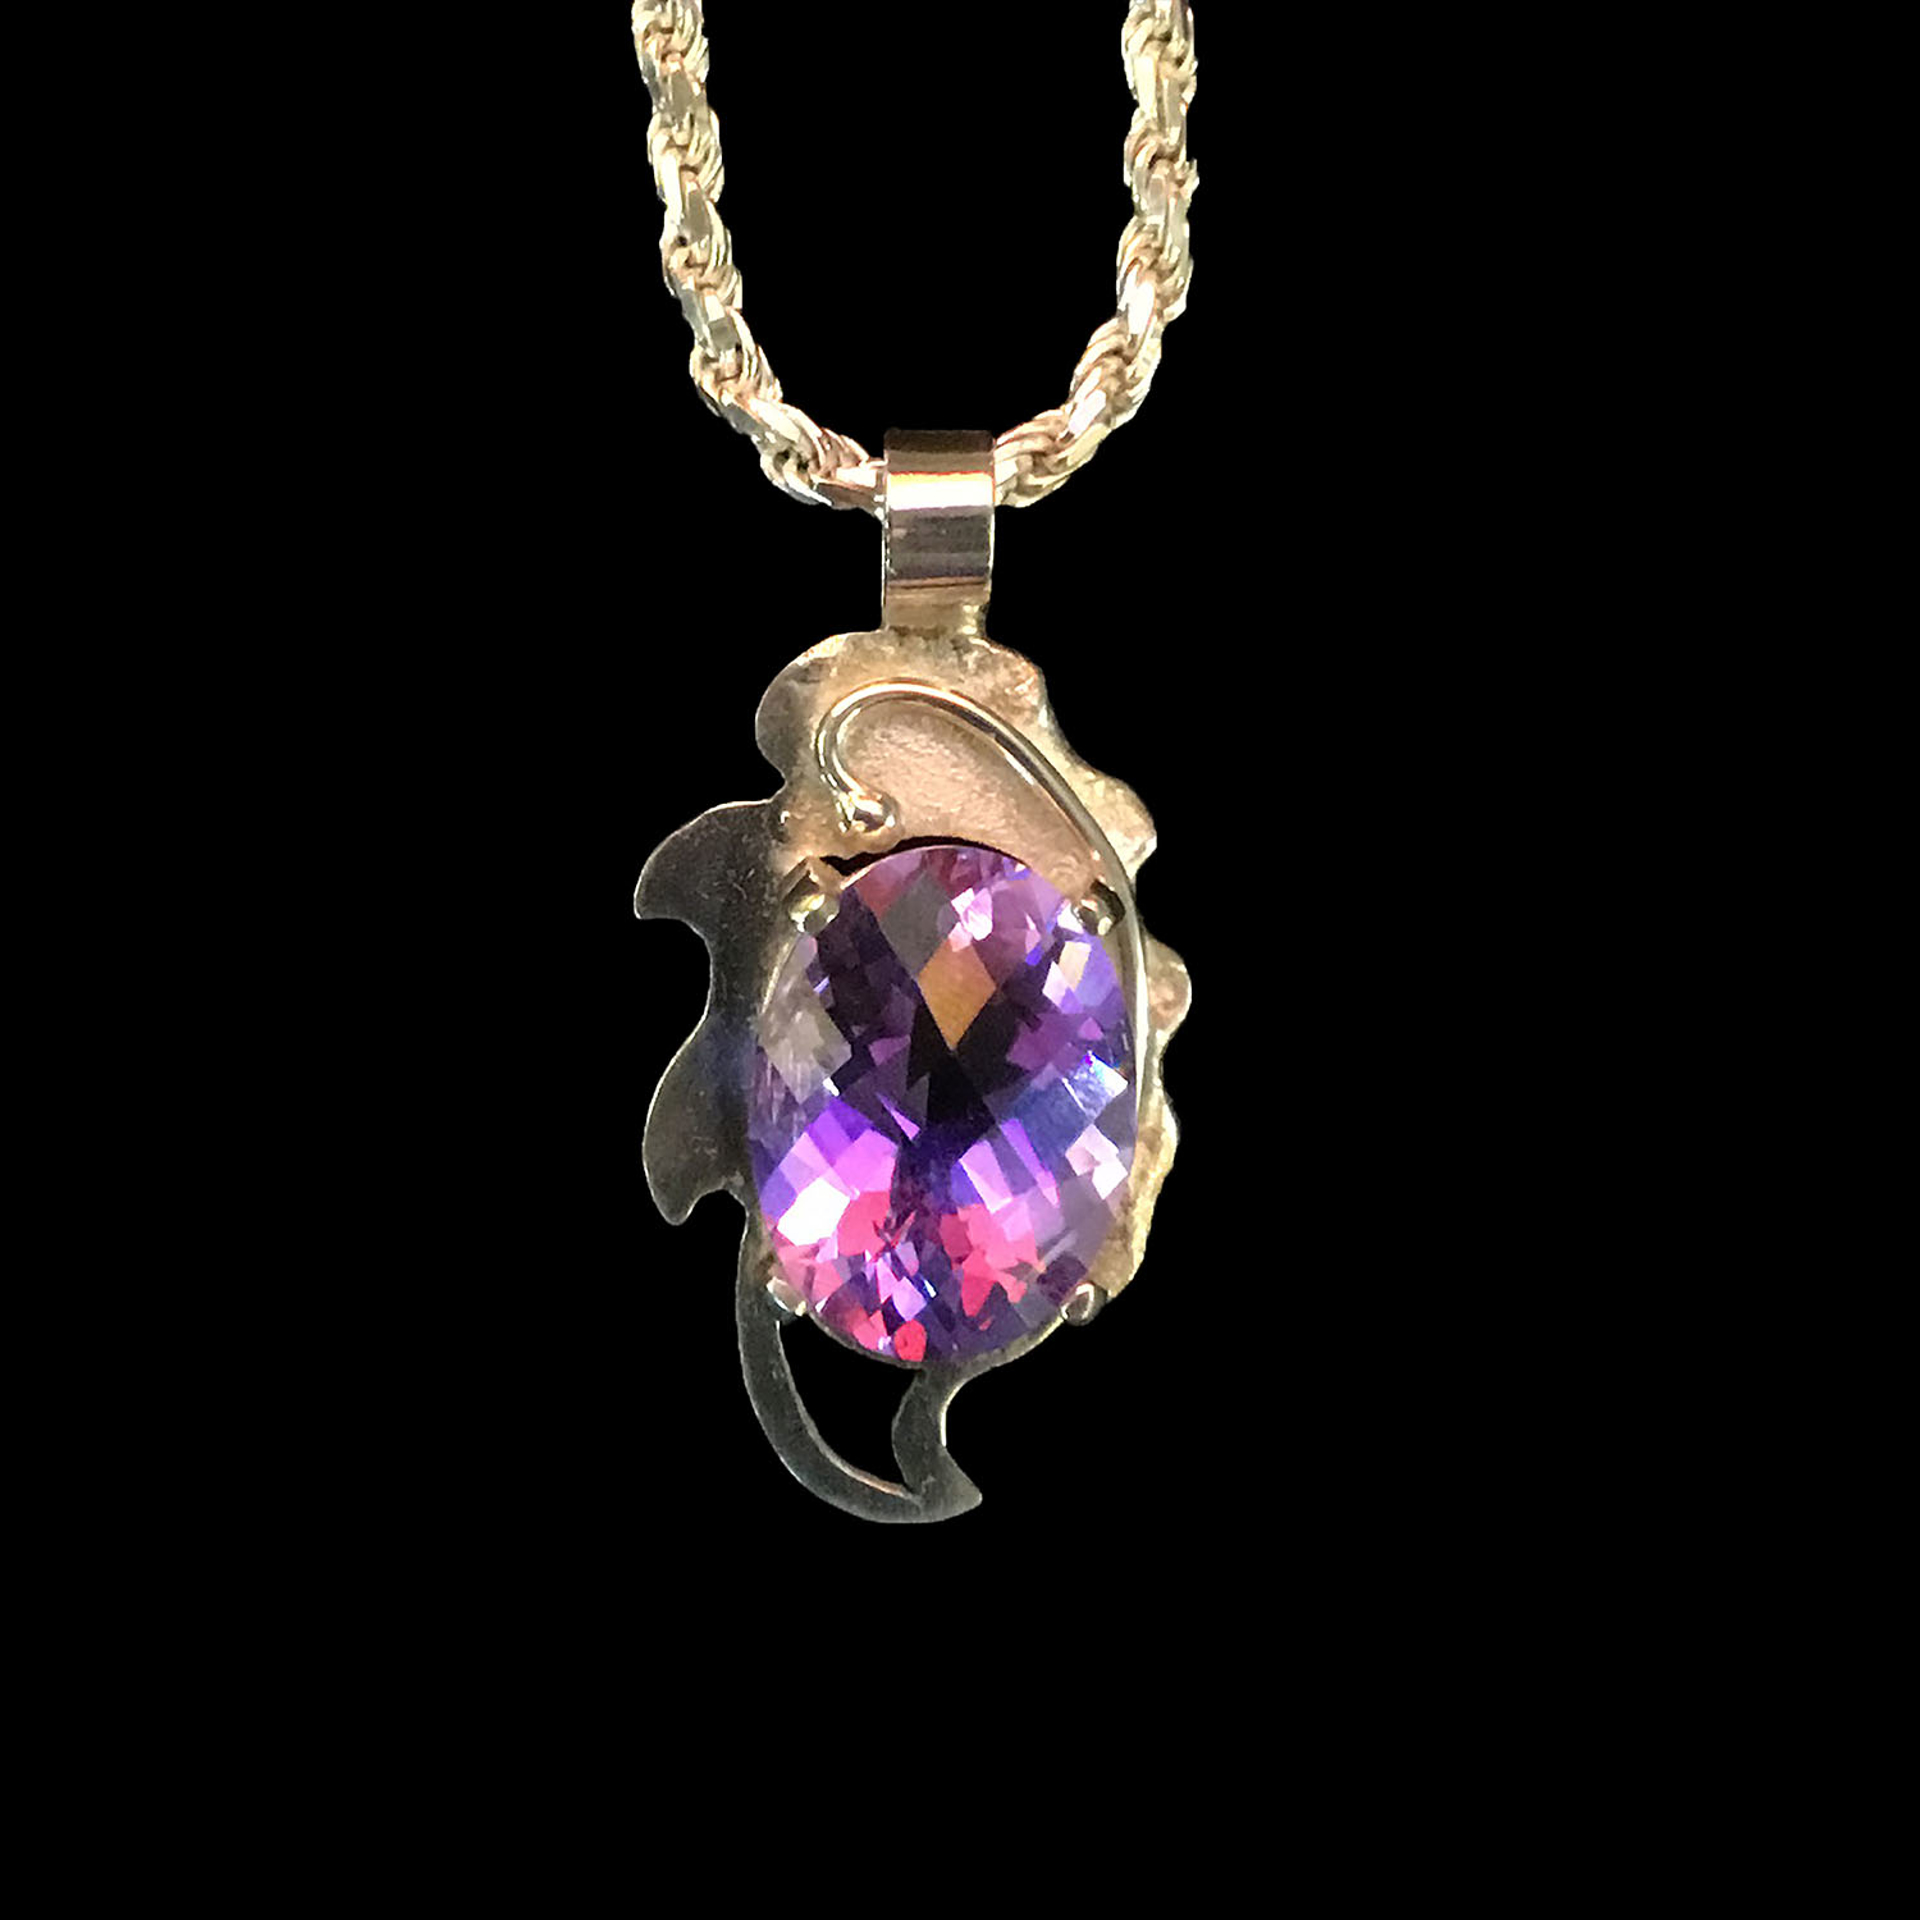 Mt Saint Helen's Twilight Large Pendant in Sterling Silver on Chain by Michael Redhawk